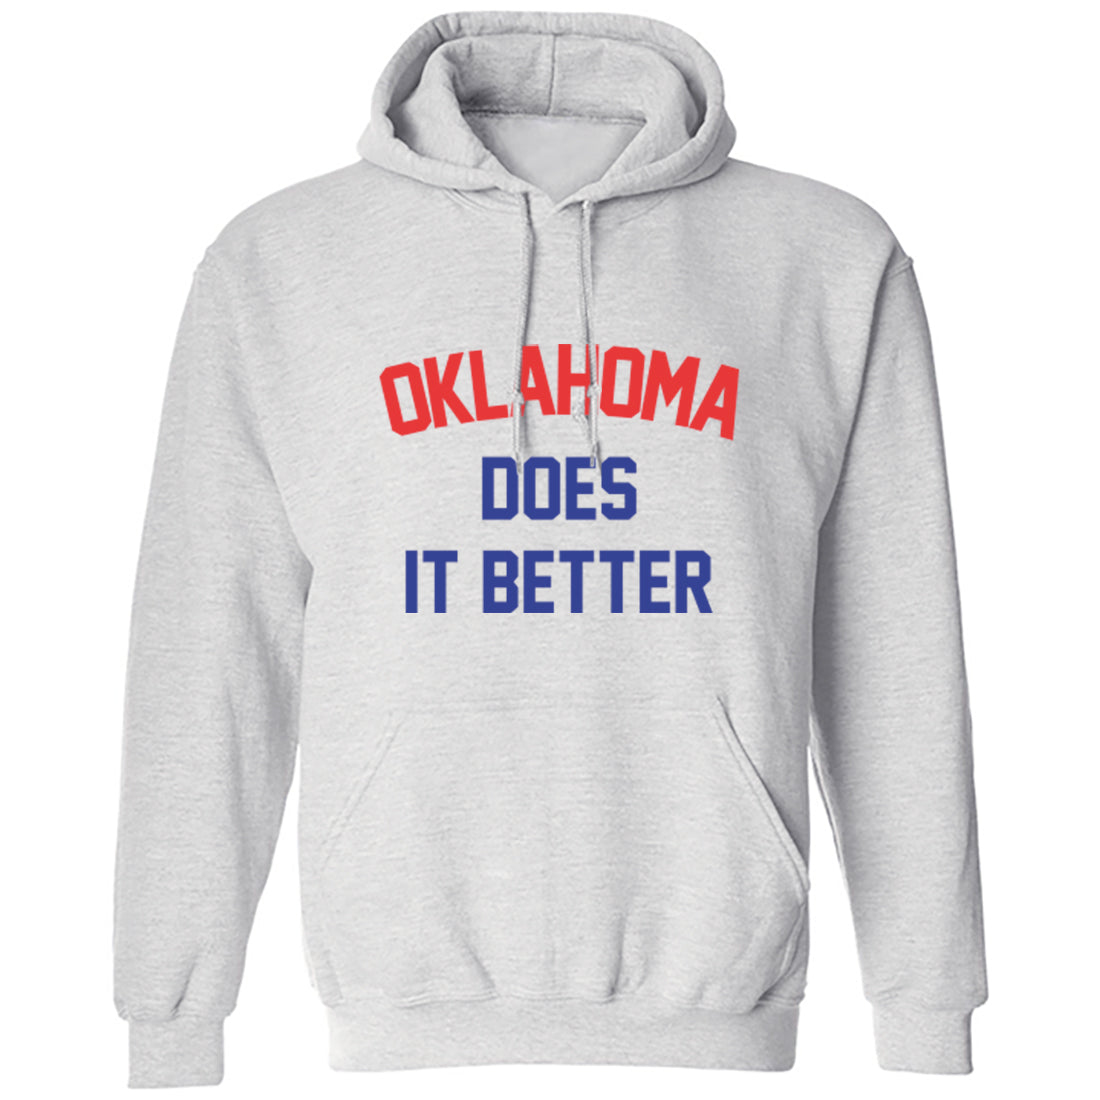 Oklahoma Does Is Better Unisex Hoodie K1158 - Illustrated Identity Ltd.